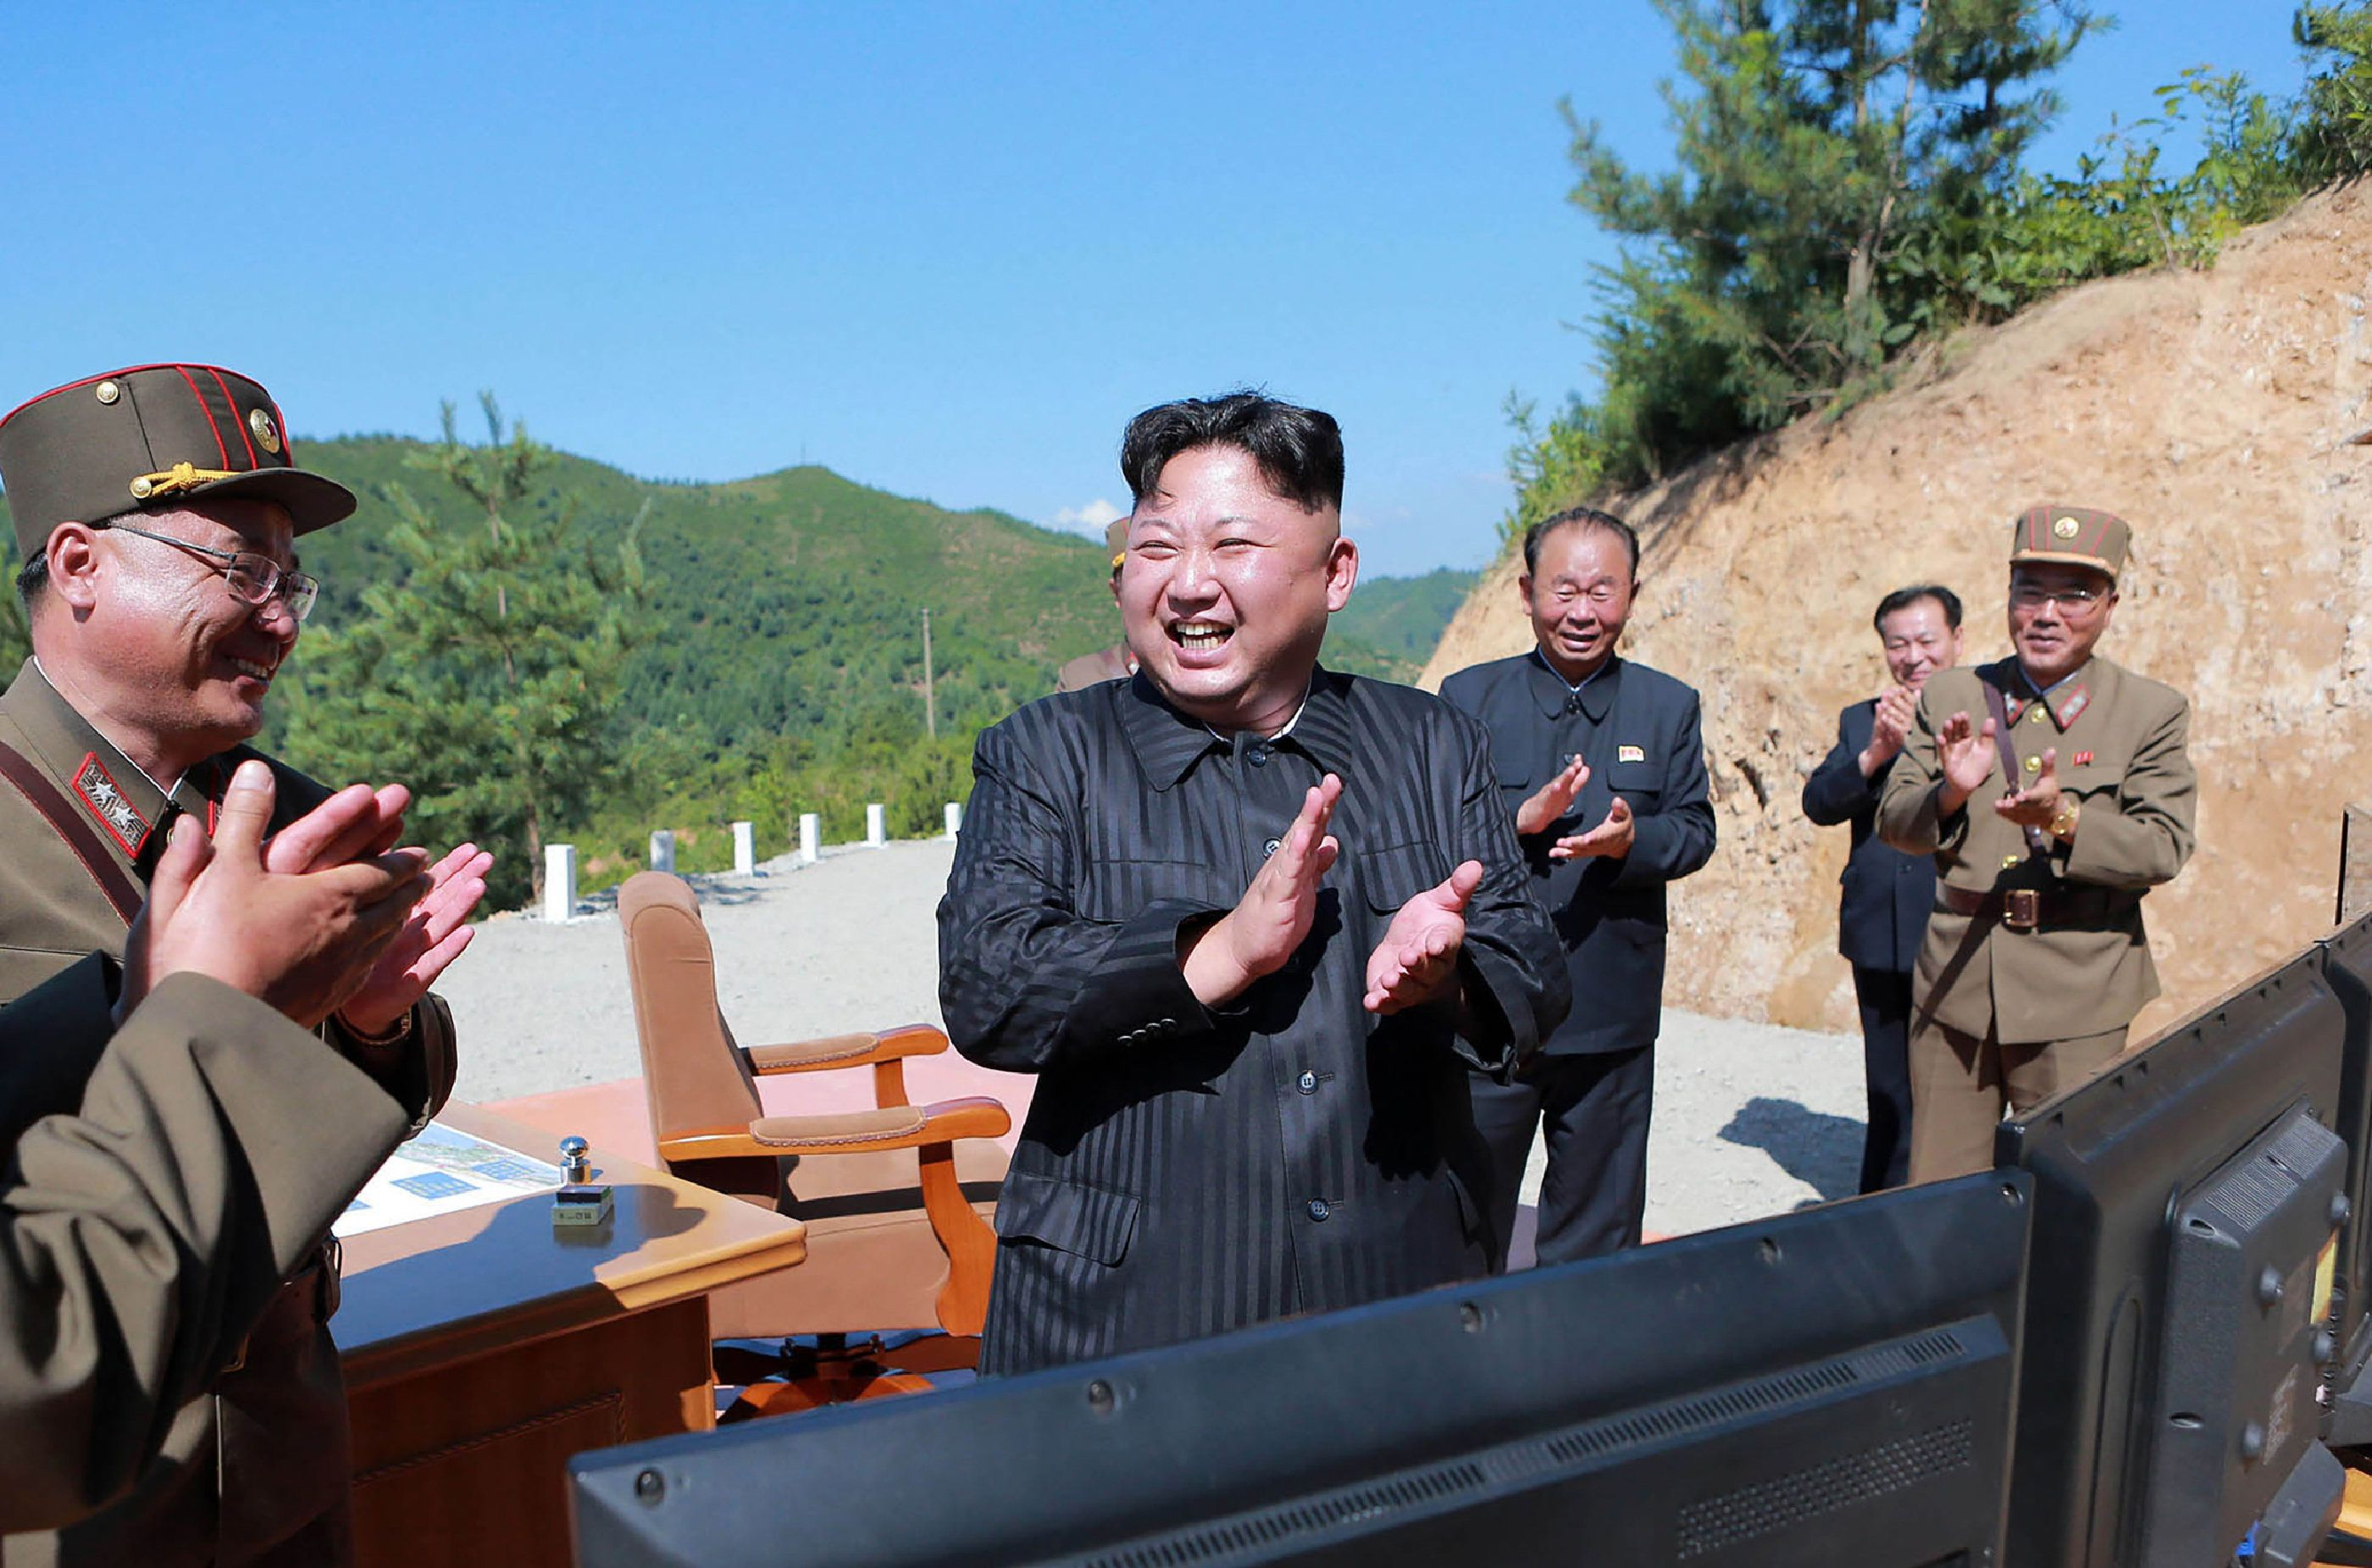 This picture taken on July 4, 2017 and released by North Korea's official Korean Central News Agency (KCNA) on July 5, 2017 shows North Korean leader Kim Jong-Un (C) celebrating the successful test-fire of the intercontinental ballistic missile Hwasong-14 at an undisclosed location. South Korea and the United States fired off missiles on July 5 simulating a precision strike against North Korea's leadership, in response to a landmark ICBM test described by Kim Jong-Un as a gift to 'American bastards'. / AFP PHOTO / KCNA VIA KNS / STR / South Korea OUT / REPUBLIC OF KOREA OUT   ---EDITORS NOTE--- RESTRICTED TO EDITORIAL USE - MANDATORY CREDIT 'AFP PHOTO/KCNA VIA KNS' - NO MARKETING NO ADVERTISING CAMPAIGNS - DISTRIBUTED AS A SERVICE TO CLIENTS THIS PICTURE WAS MADE AVAILABLE BY A THIRD PARTY. AFP CAN NOT INDEPENDENTLY VERIFY THE AUTHENTICITY, LOCATION, DATE AND CONTENT OF THIS IMAGE. THIS PHOTO IS DISTRIBUTED EXACTLY AS RECEIVED BY AFP.    /         (Photo credit should read STR/AFP/Getty Images)